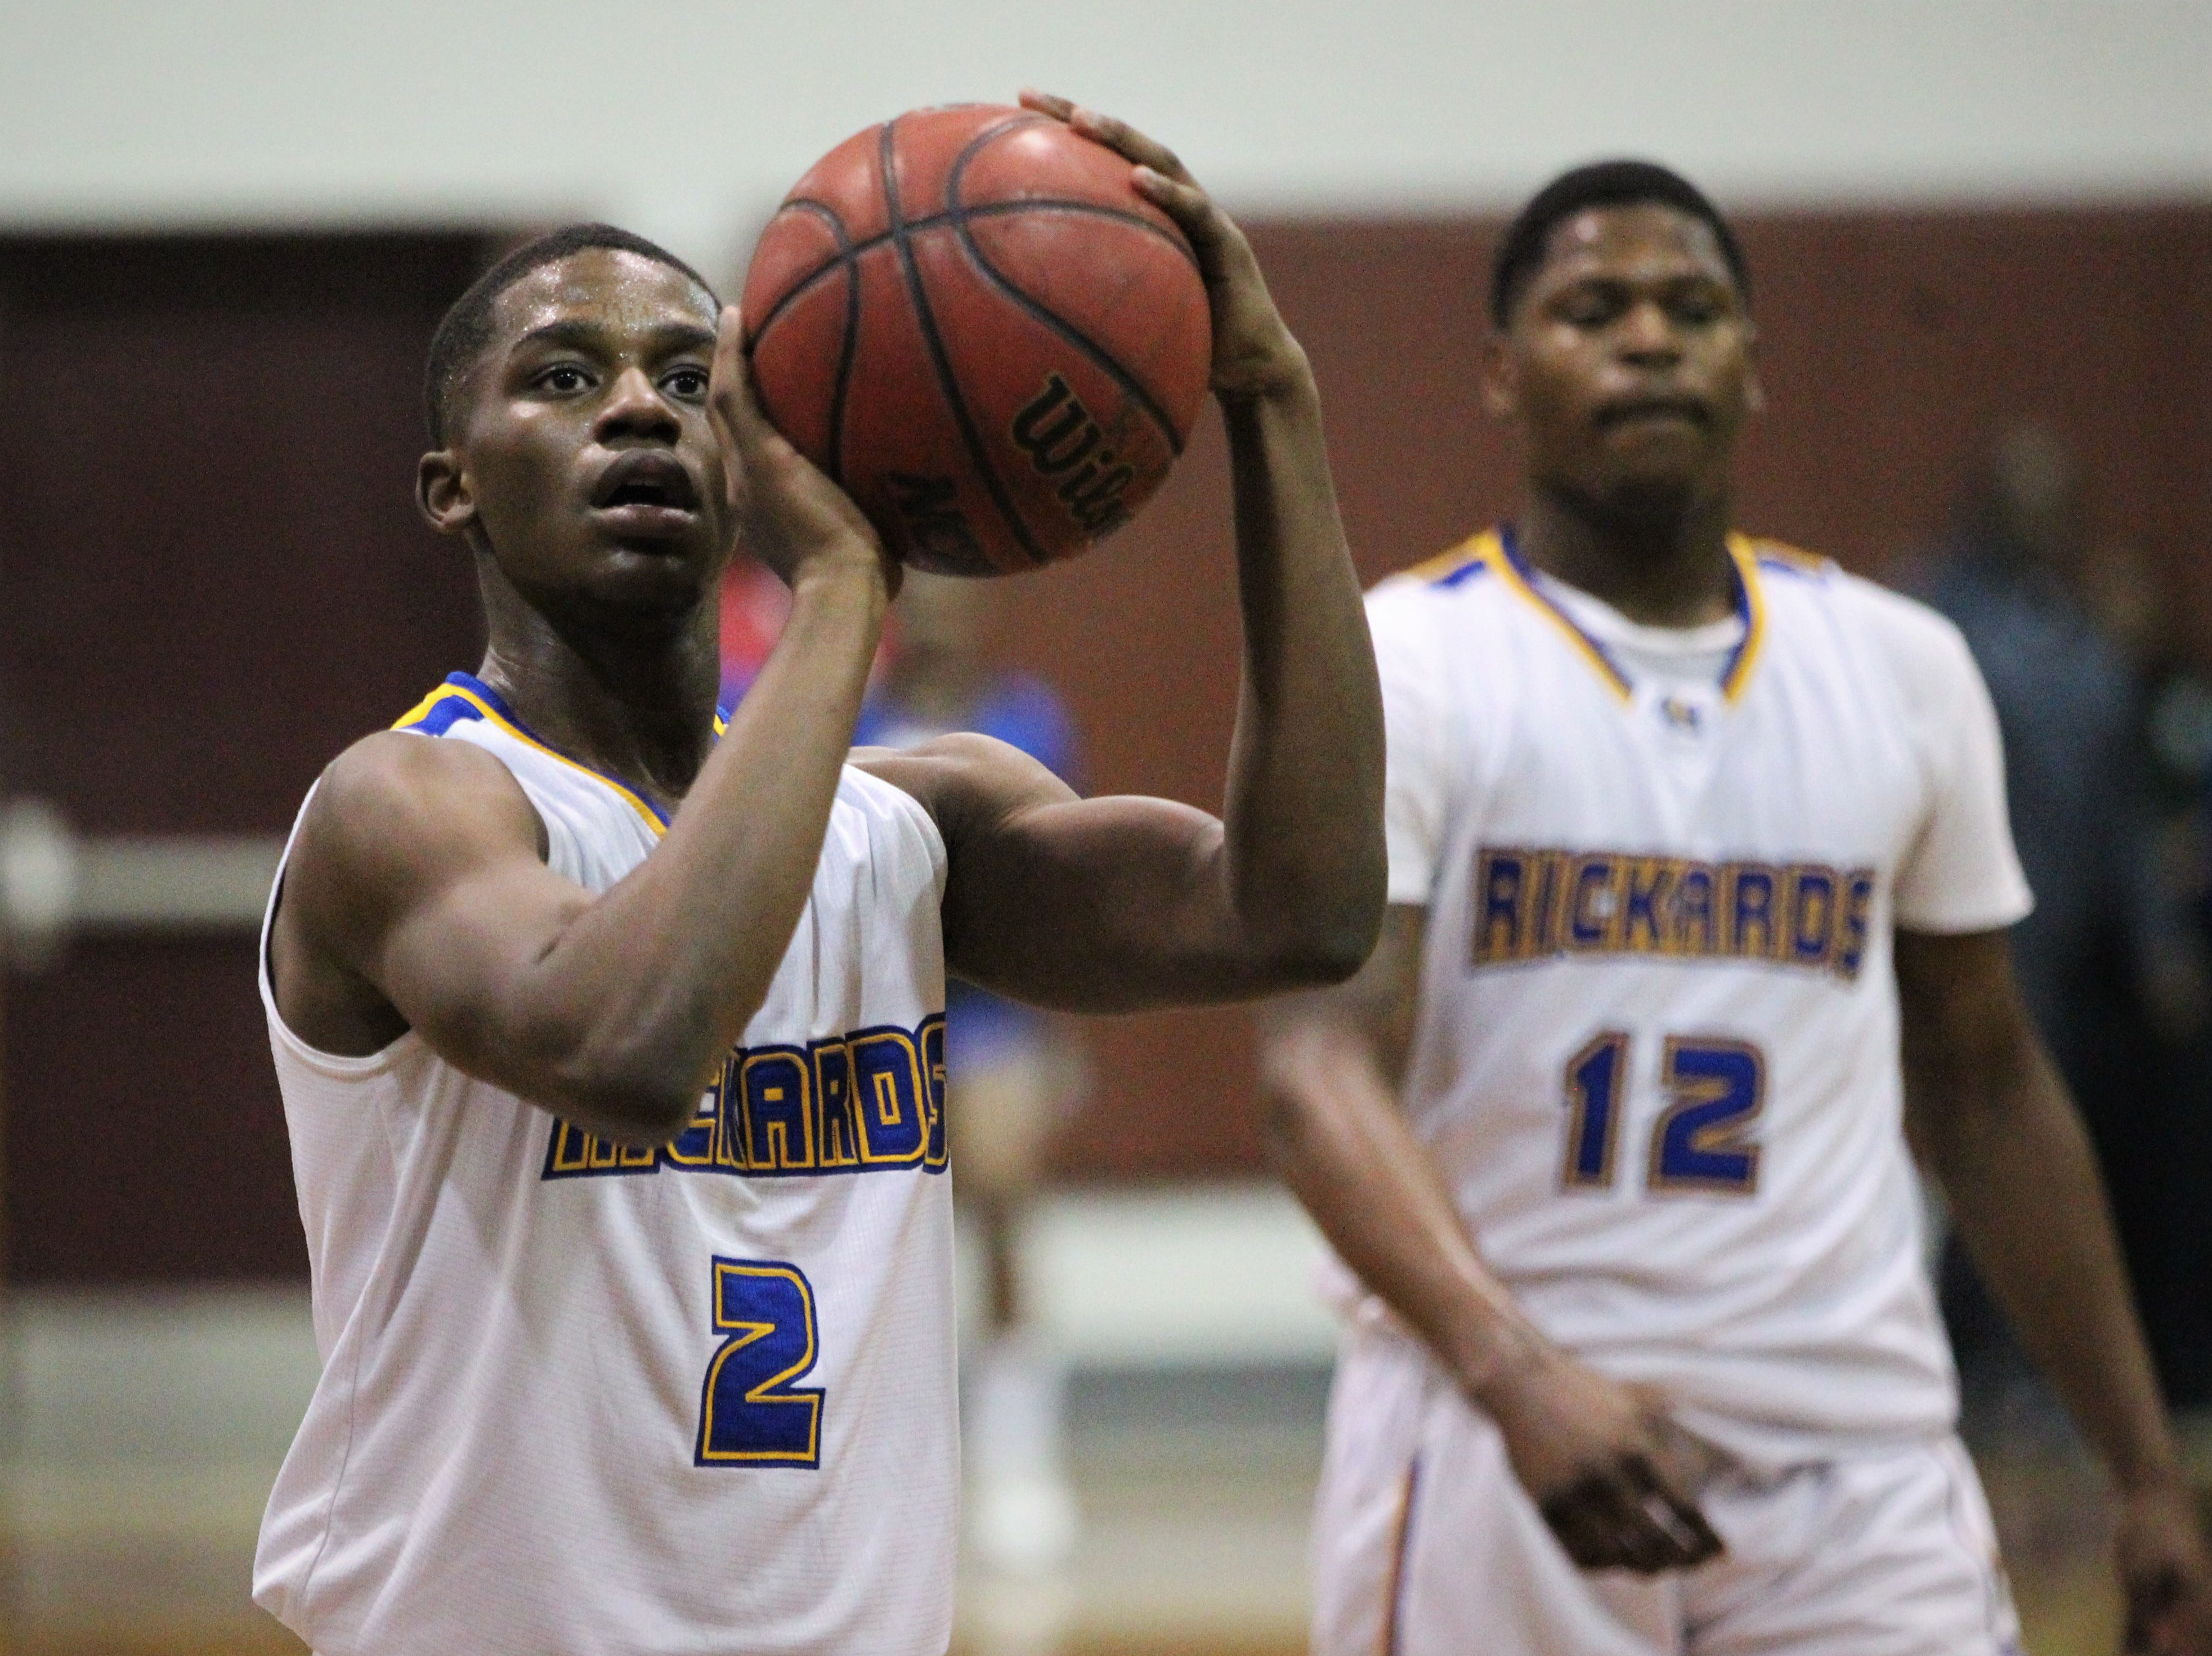 Rickards' Otis Young shoots a free throw as Rickards' boys basketball team beat Godby 58-47 during the District 2-6A championship at Chiles on Feb. 15, 2019.